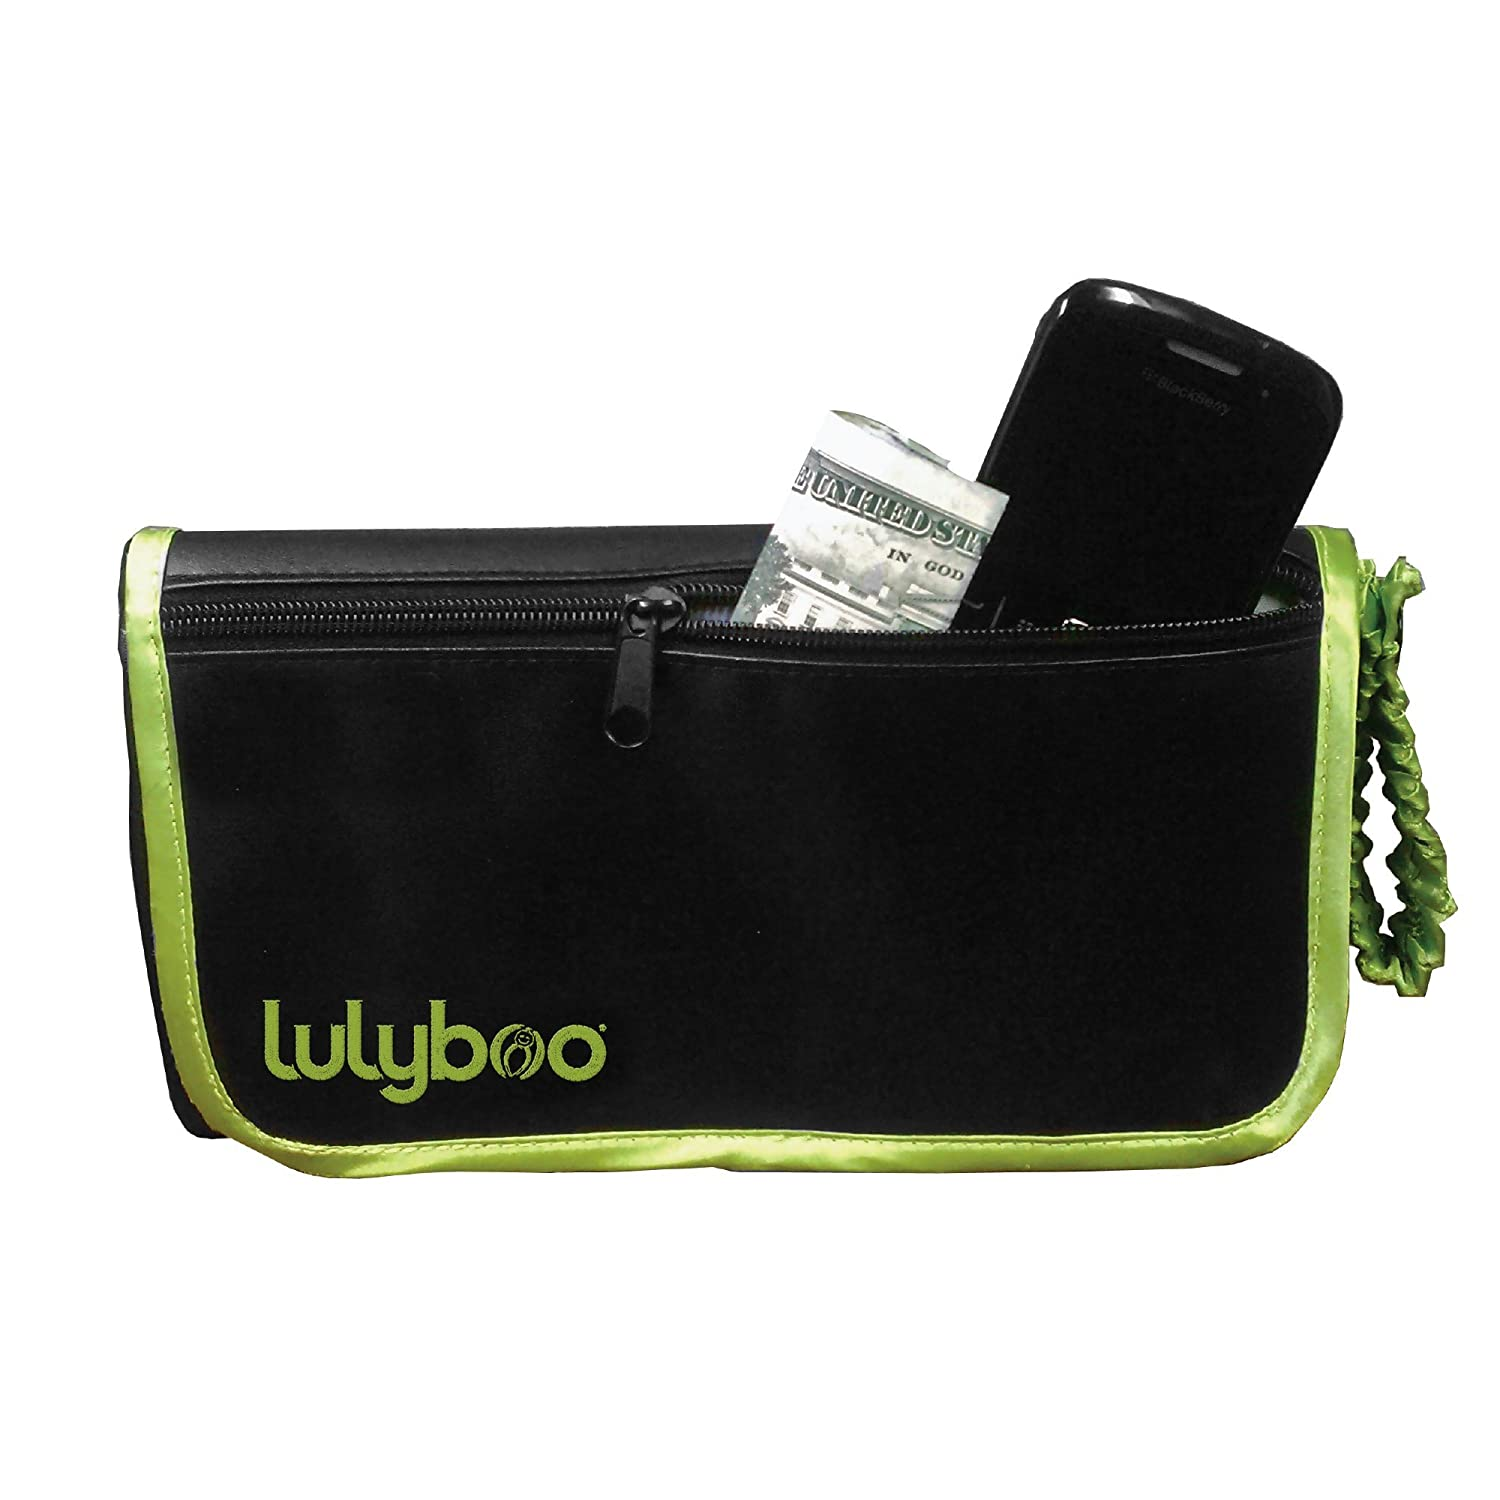 lulyboo baby changing kit waterproof pact travel